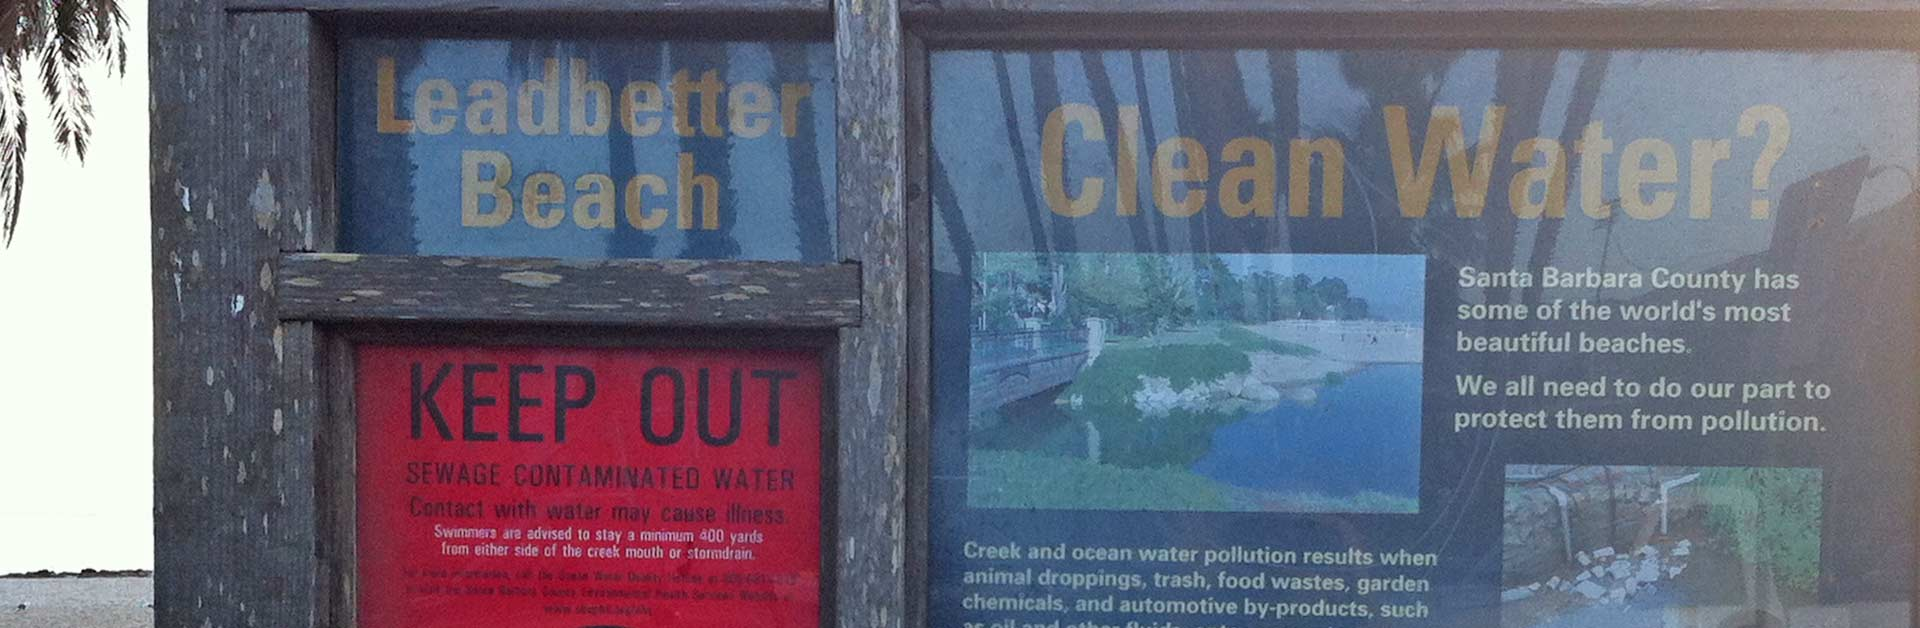 Leadbetter beach closure sign due to unclean water.